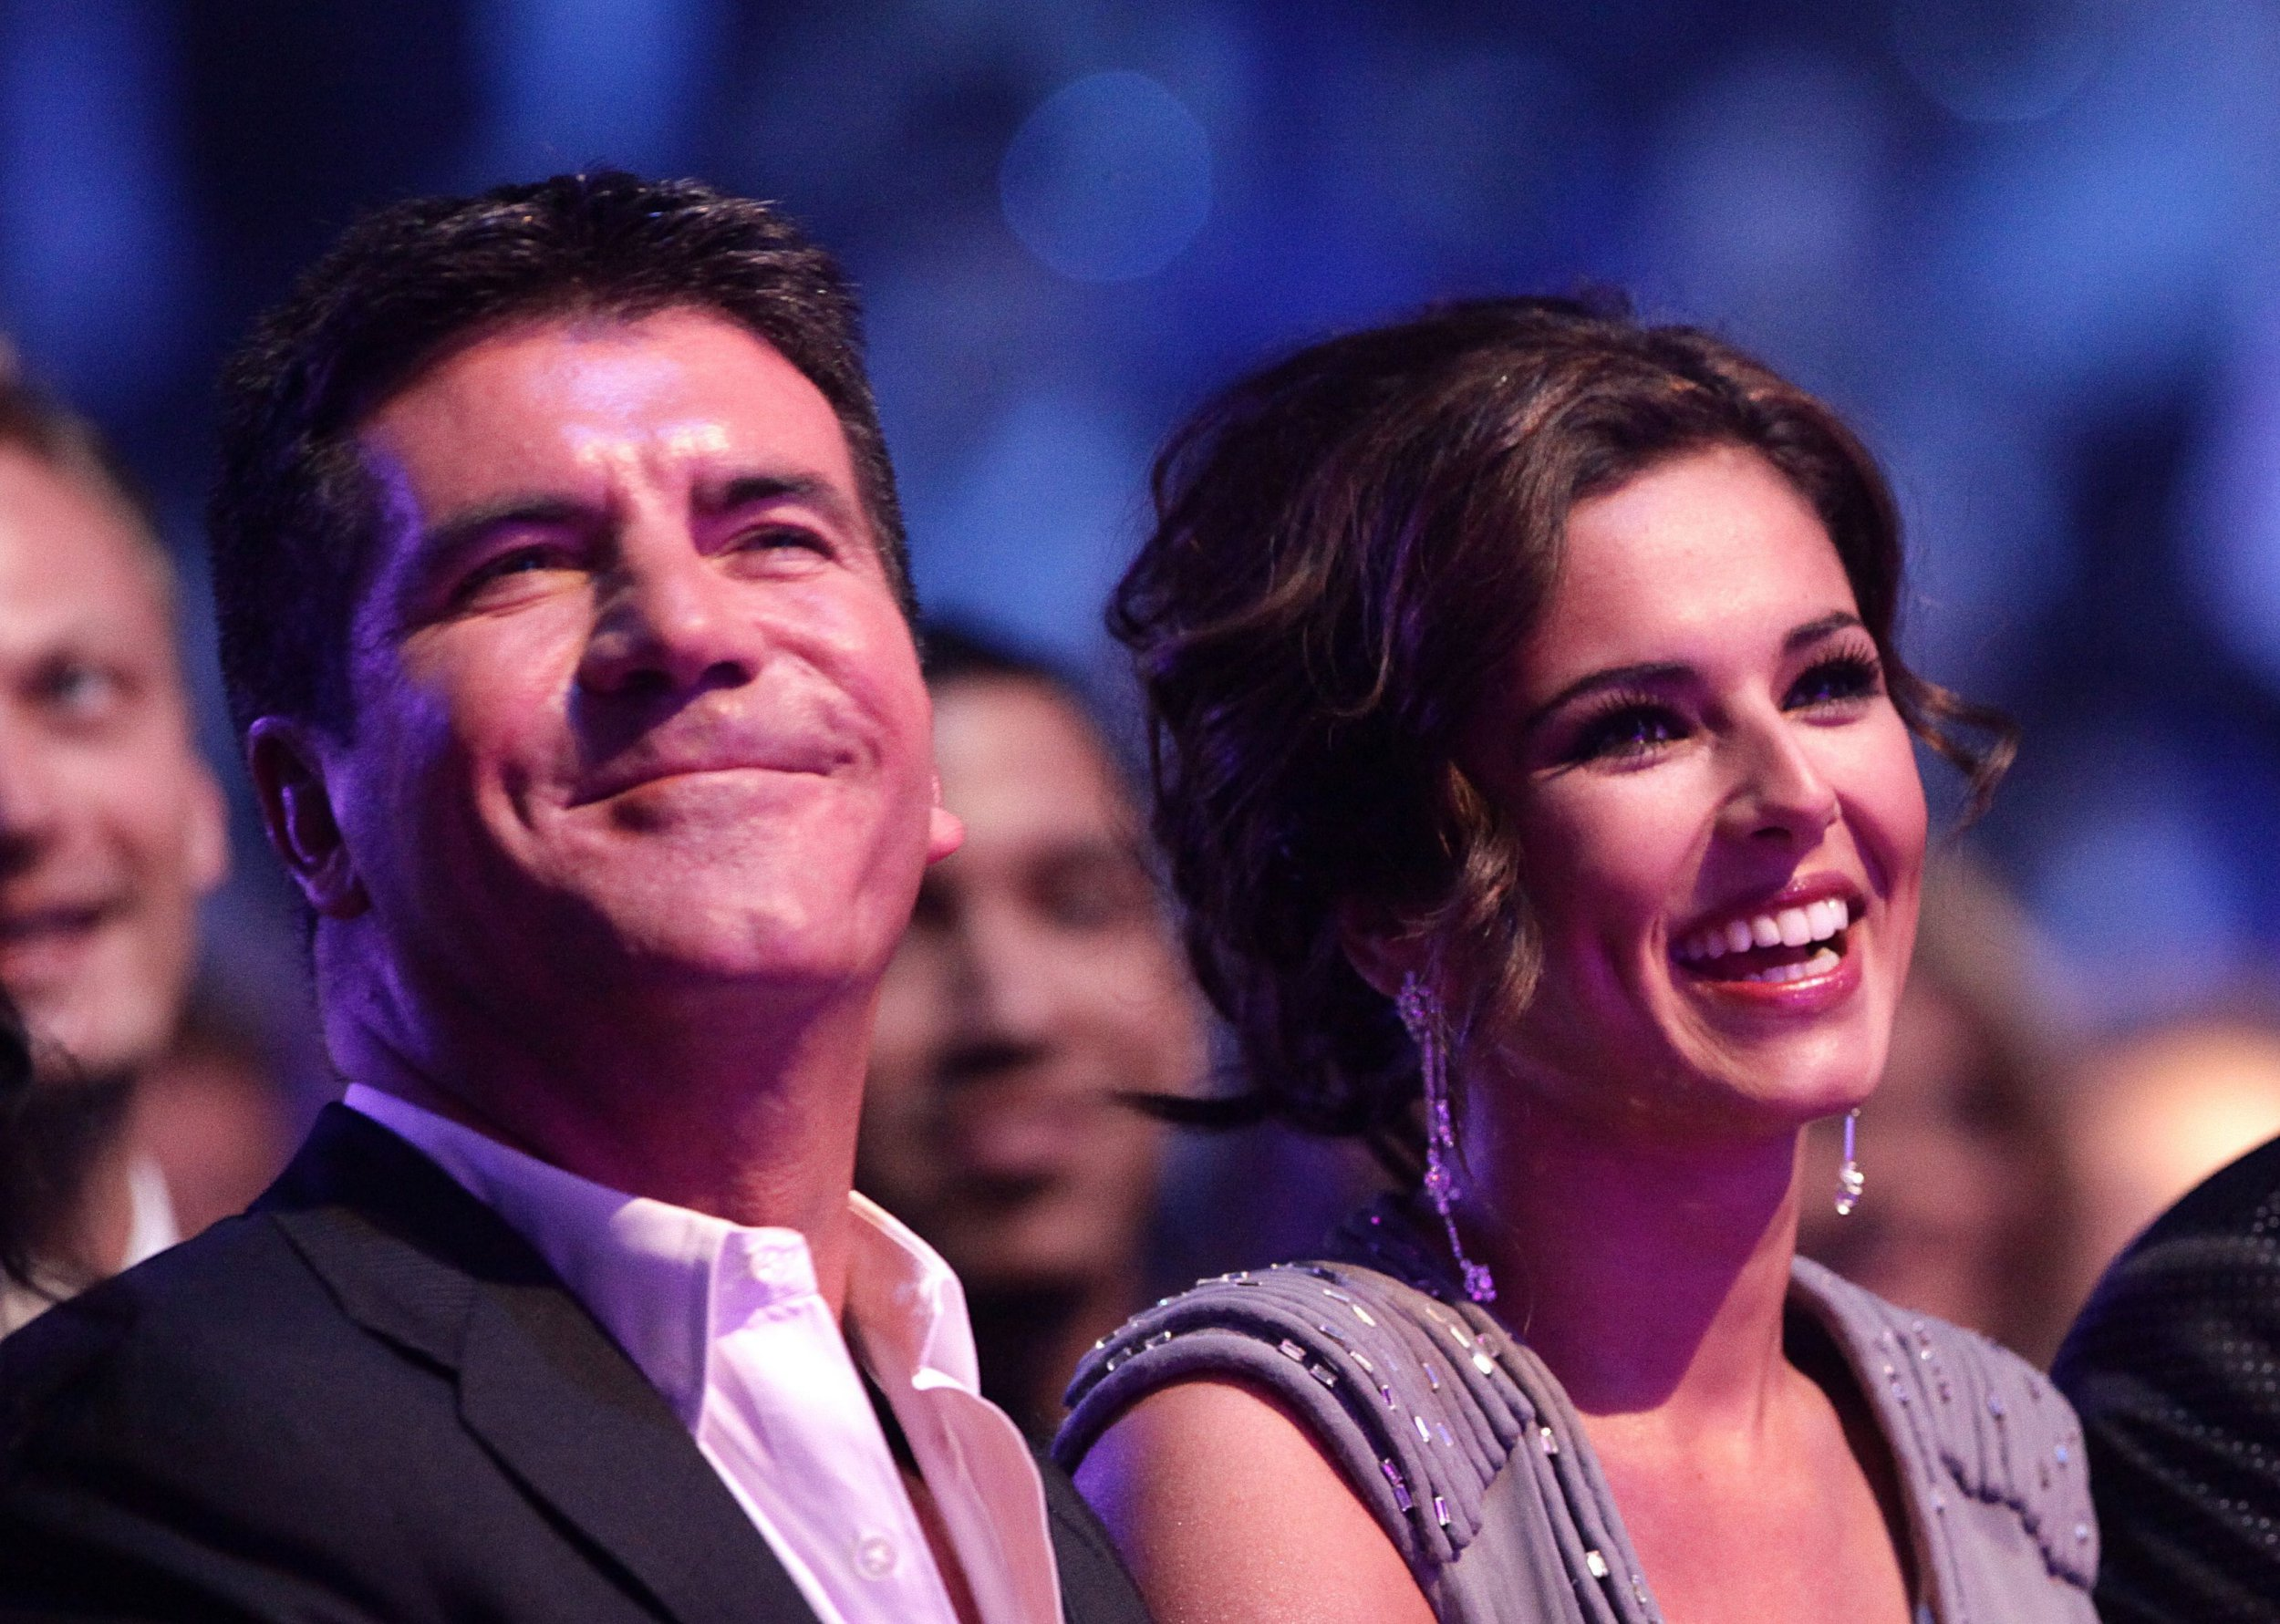 Simon Cowell back on talking terms with Cheryl after she sends 'I miss you' text